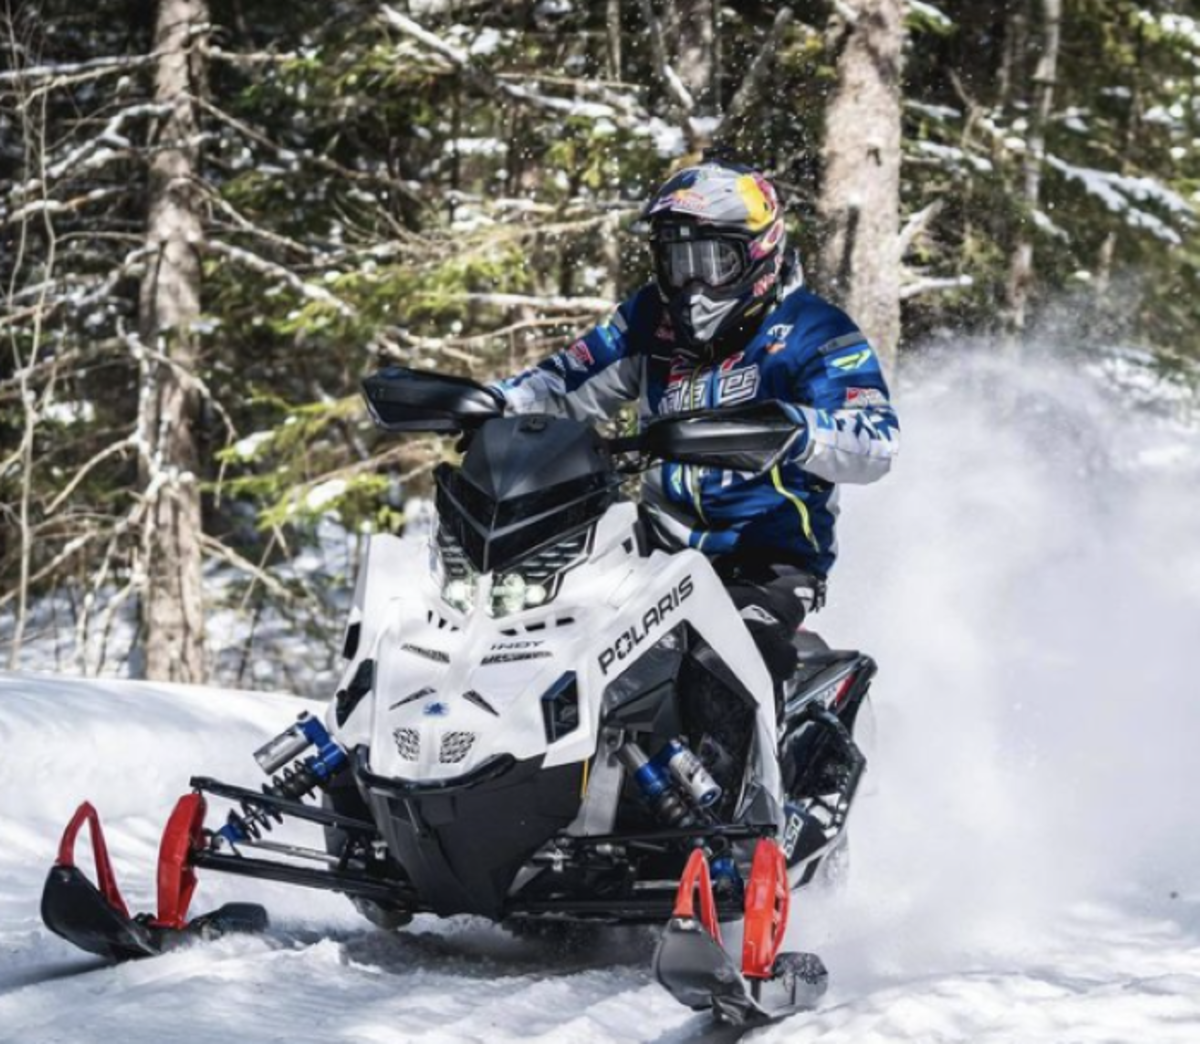 Snowmobile champion rescued after stunt mishap landed him in Lake Superior